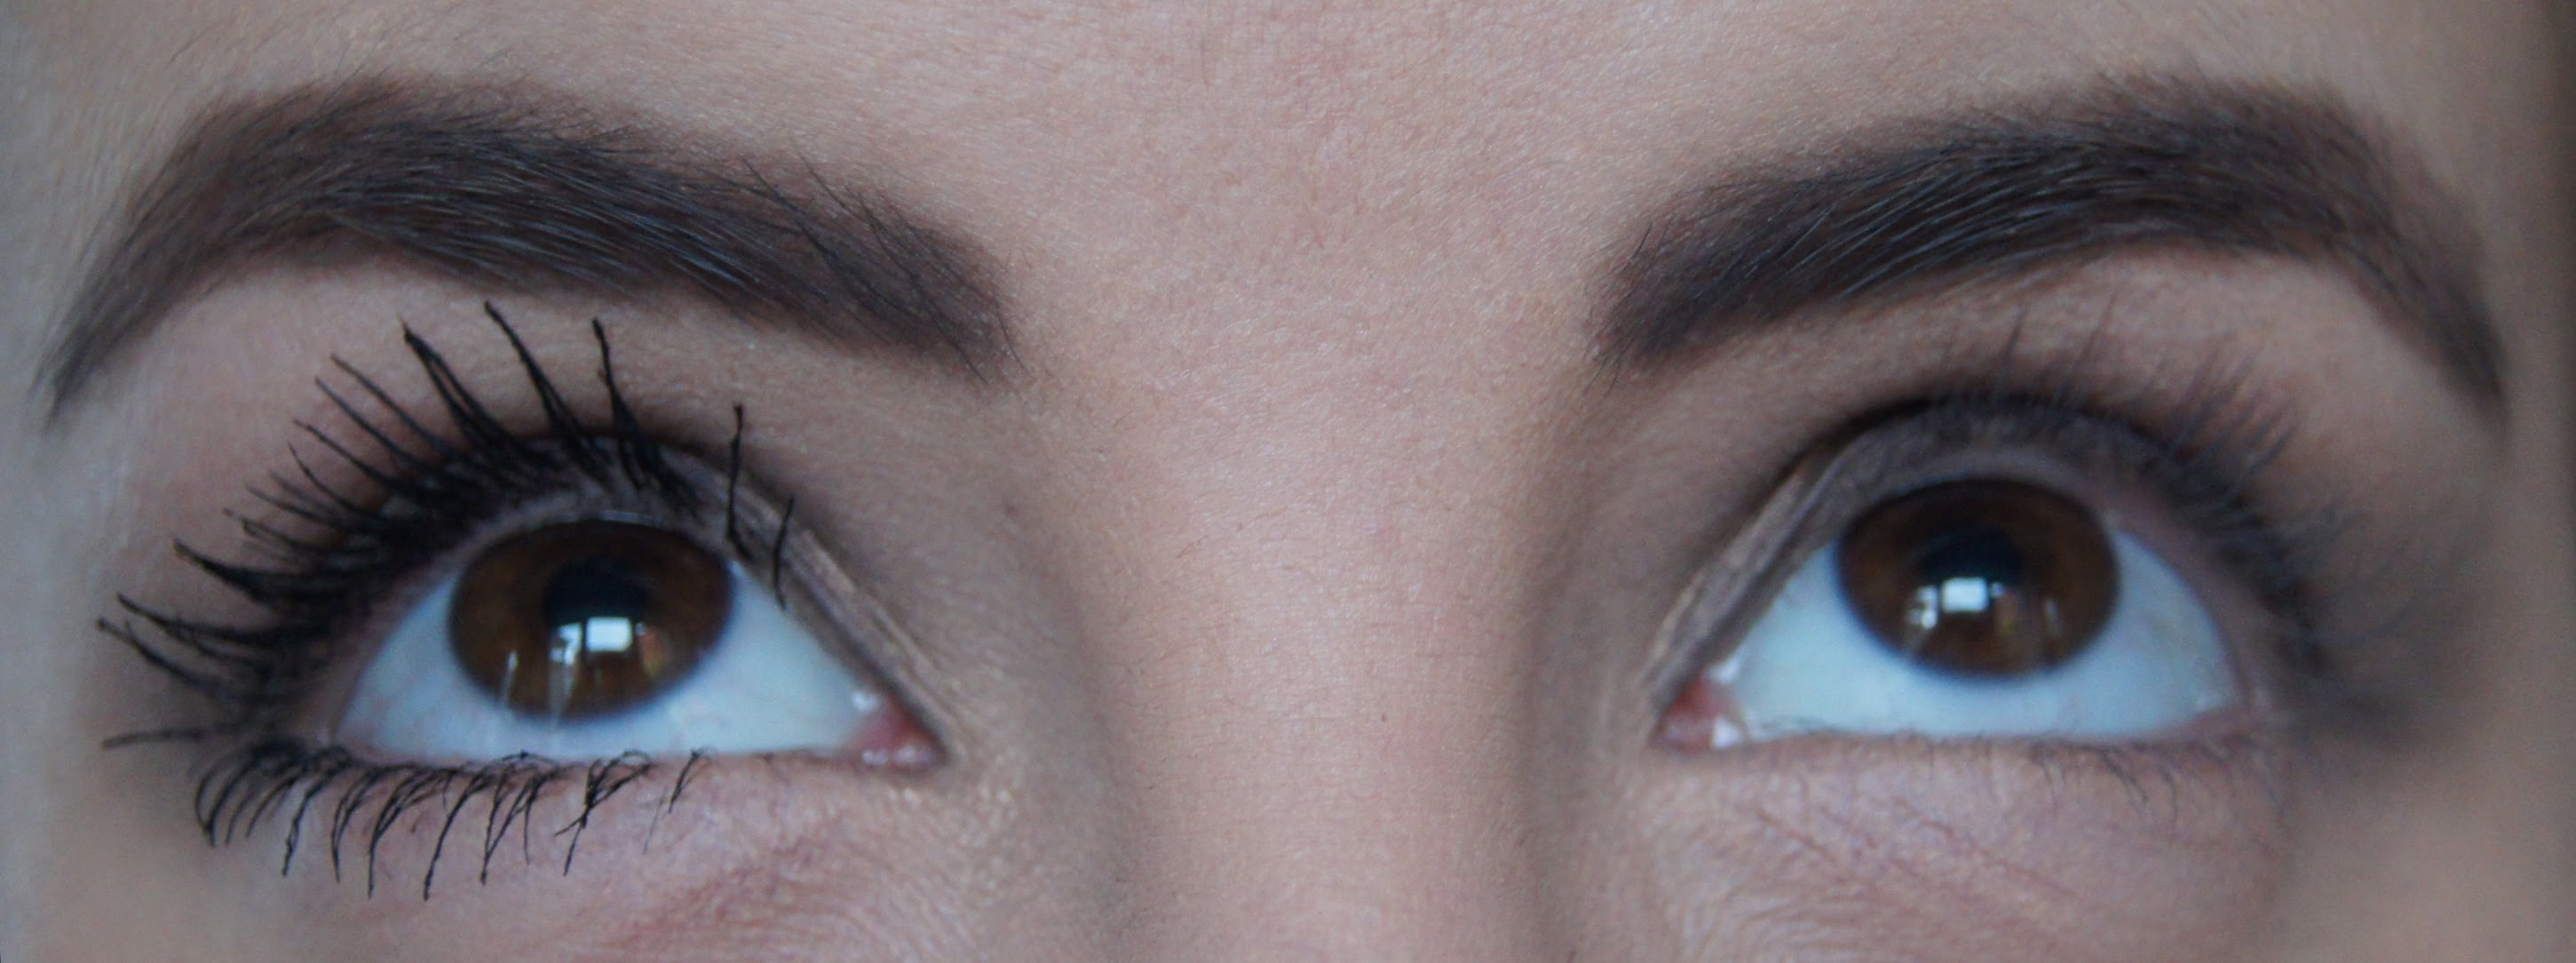 Benefit They're Real Mascara Review With Without Before After Swatch